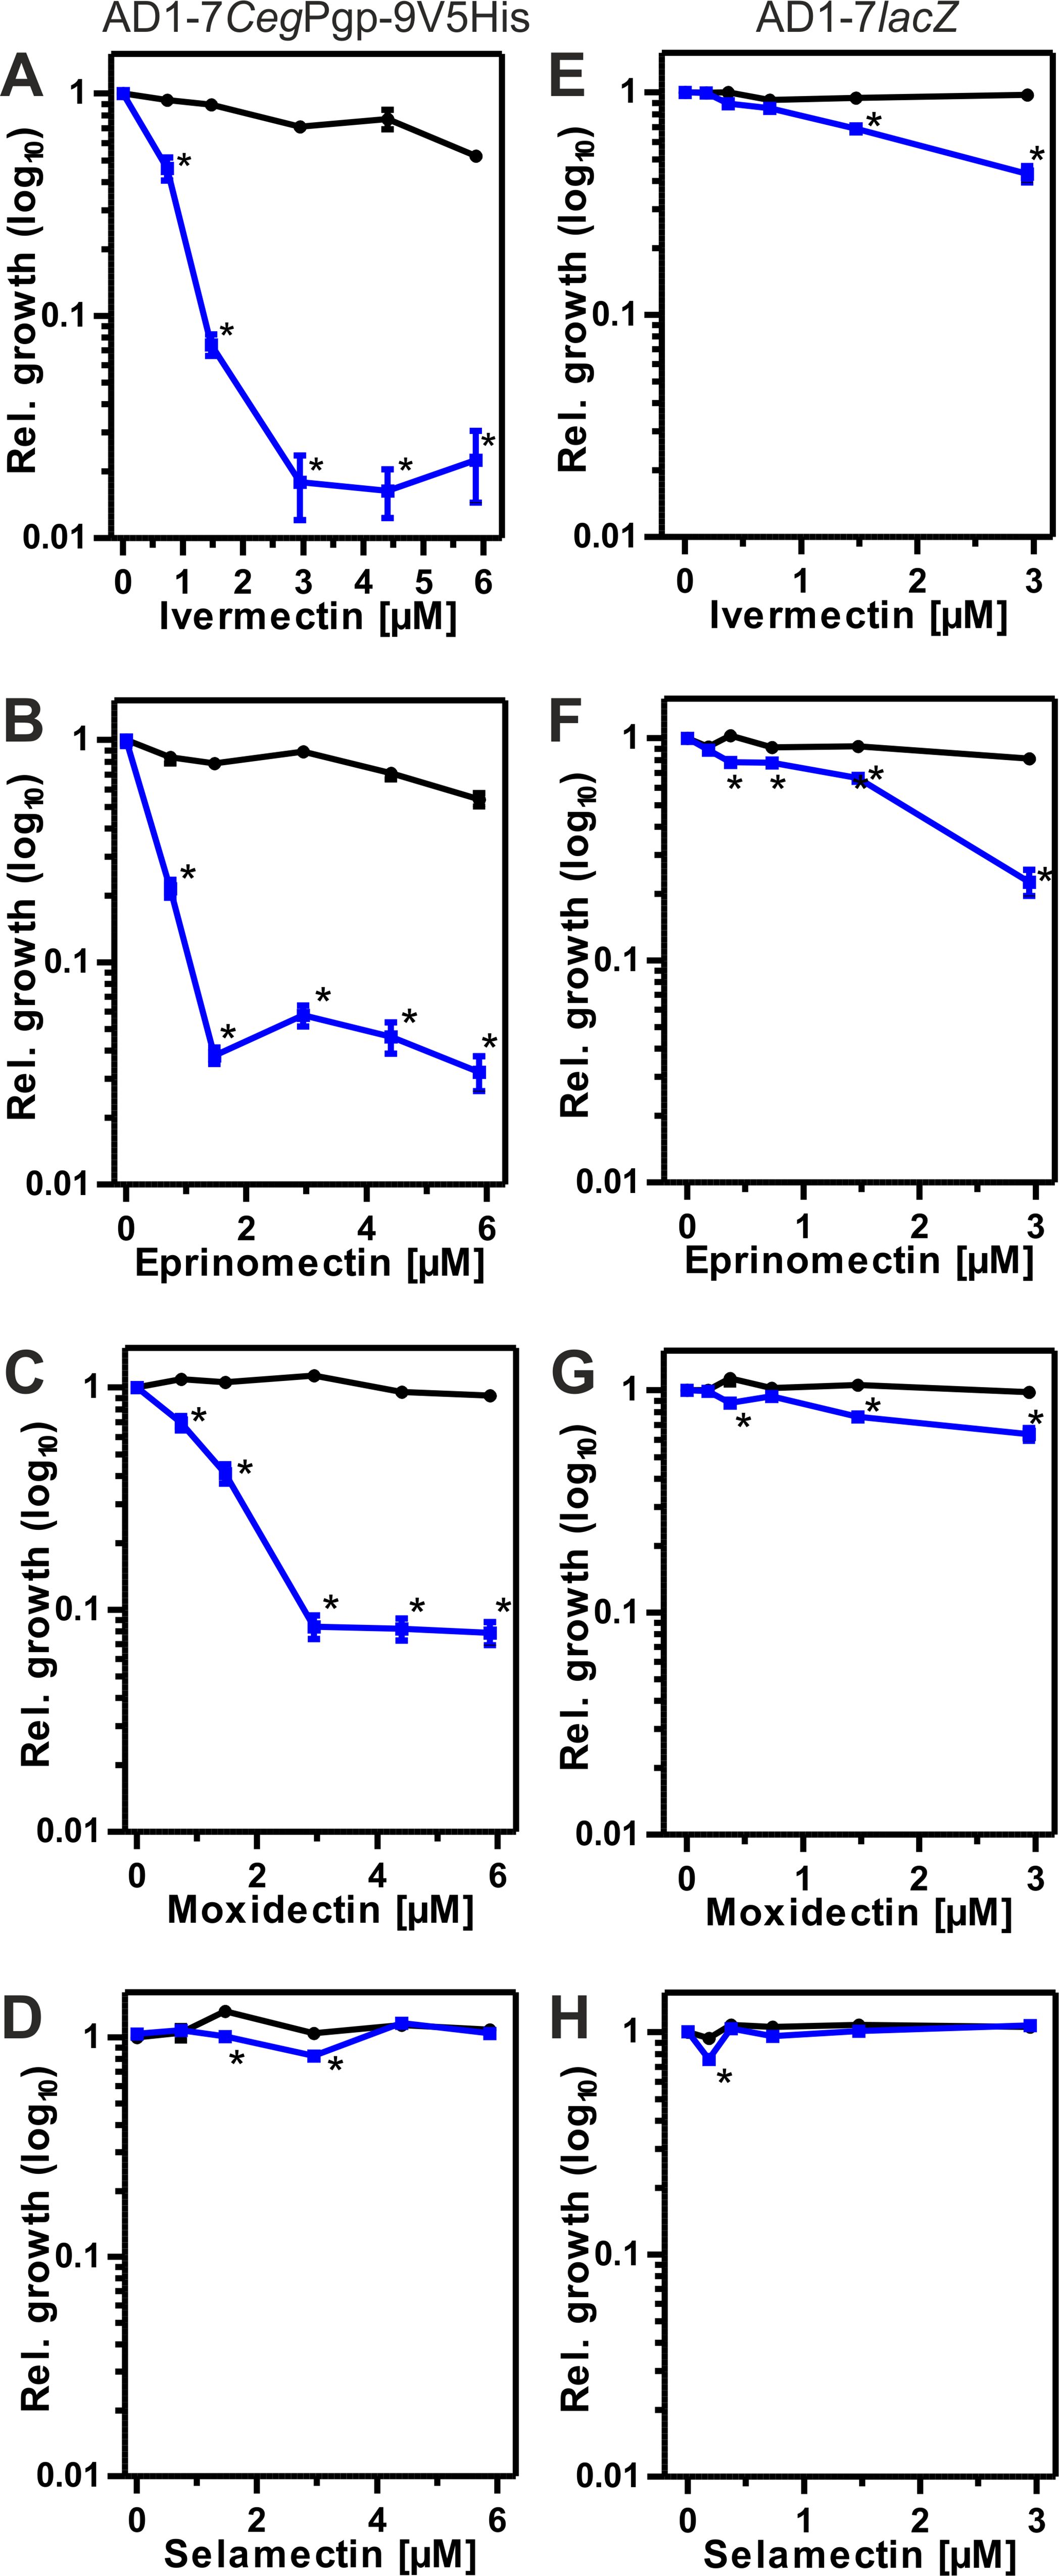 Effects of MLs on susceptibility to ketoconazole (Ket).